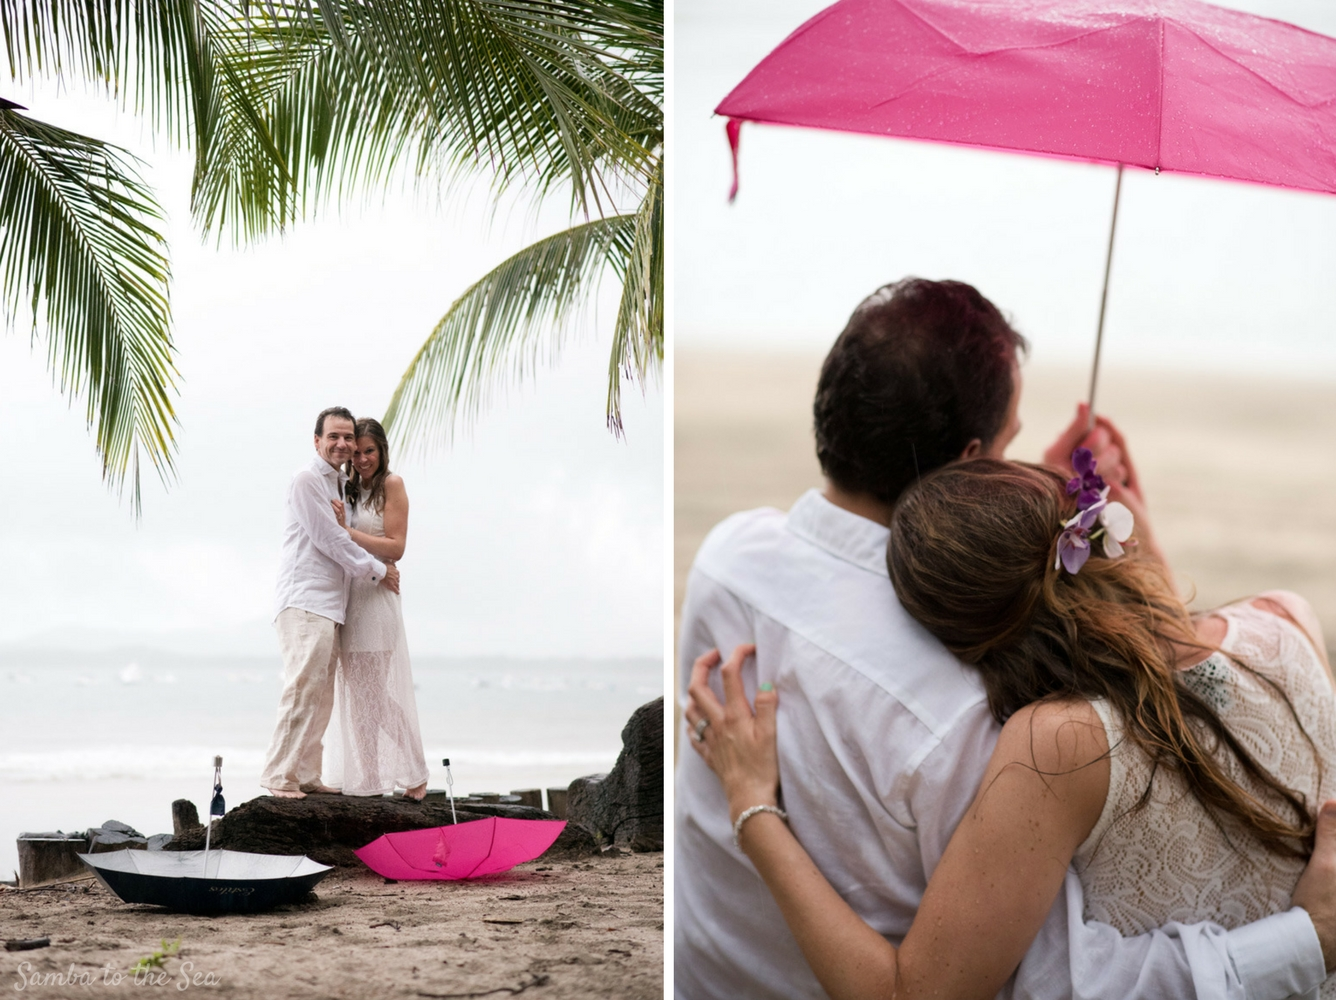 Couple holding an umbrella during a rain storm after their elopement in Costa Rica. Photographed by Kristen M. Brown, Samba to the Sea Photography.